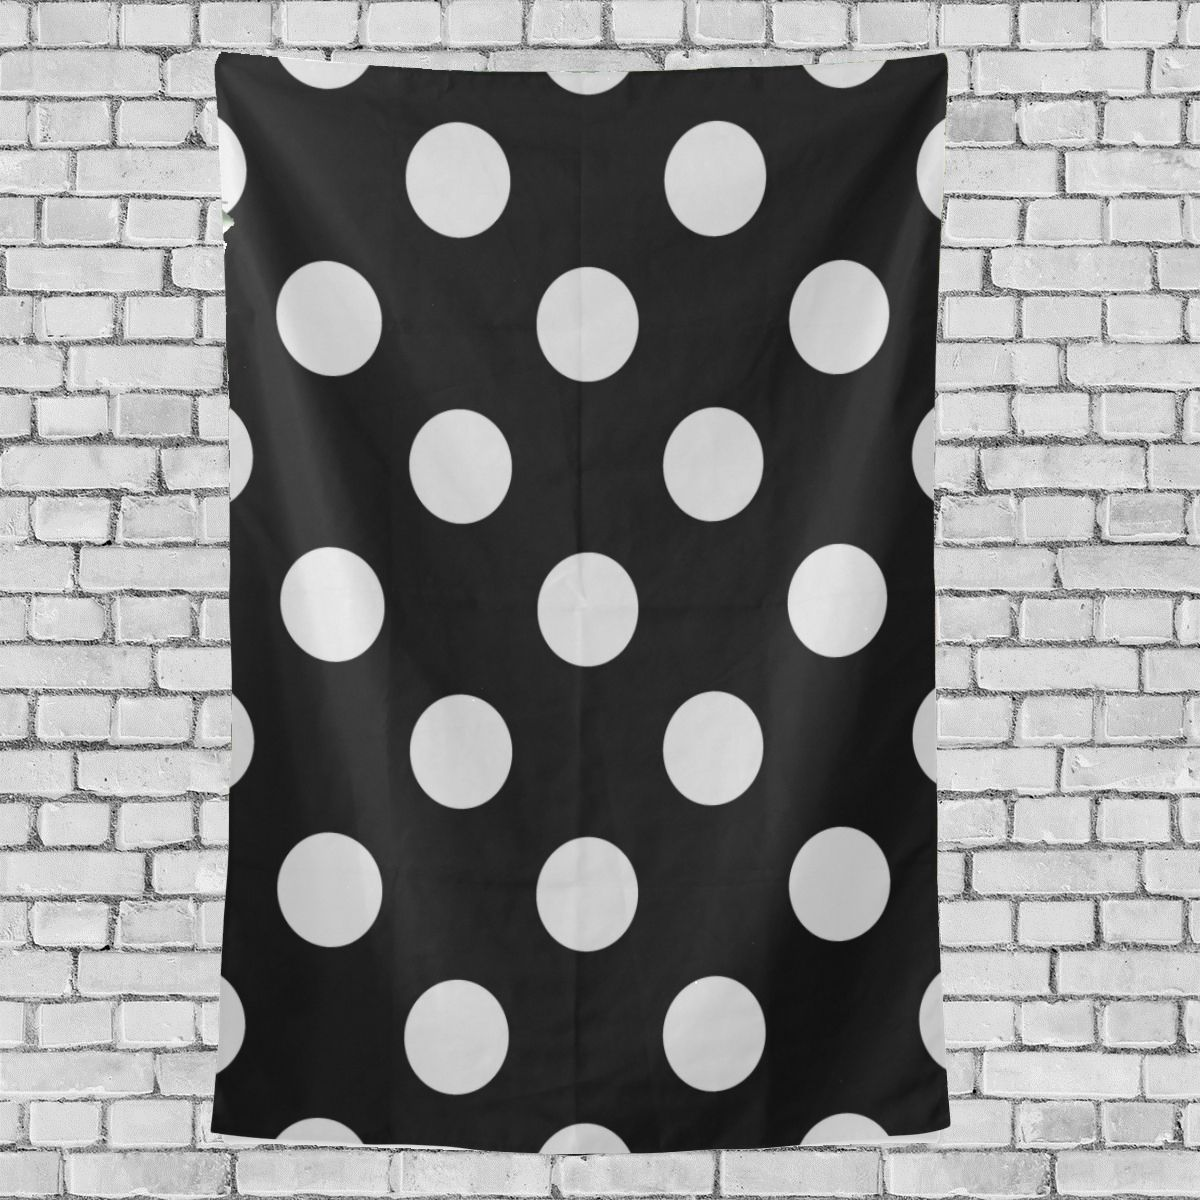 Primary image for Fire Wall Decor White Black Polka Dot Pattern Prinesses Wall Hanging 40x60 Inch